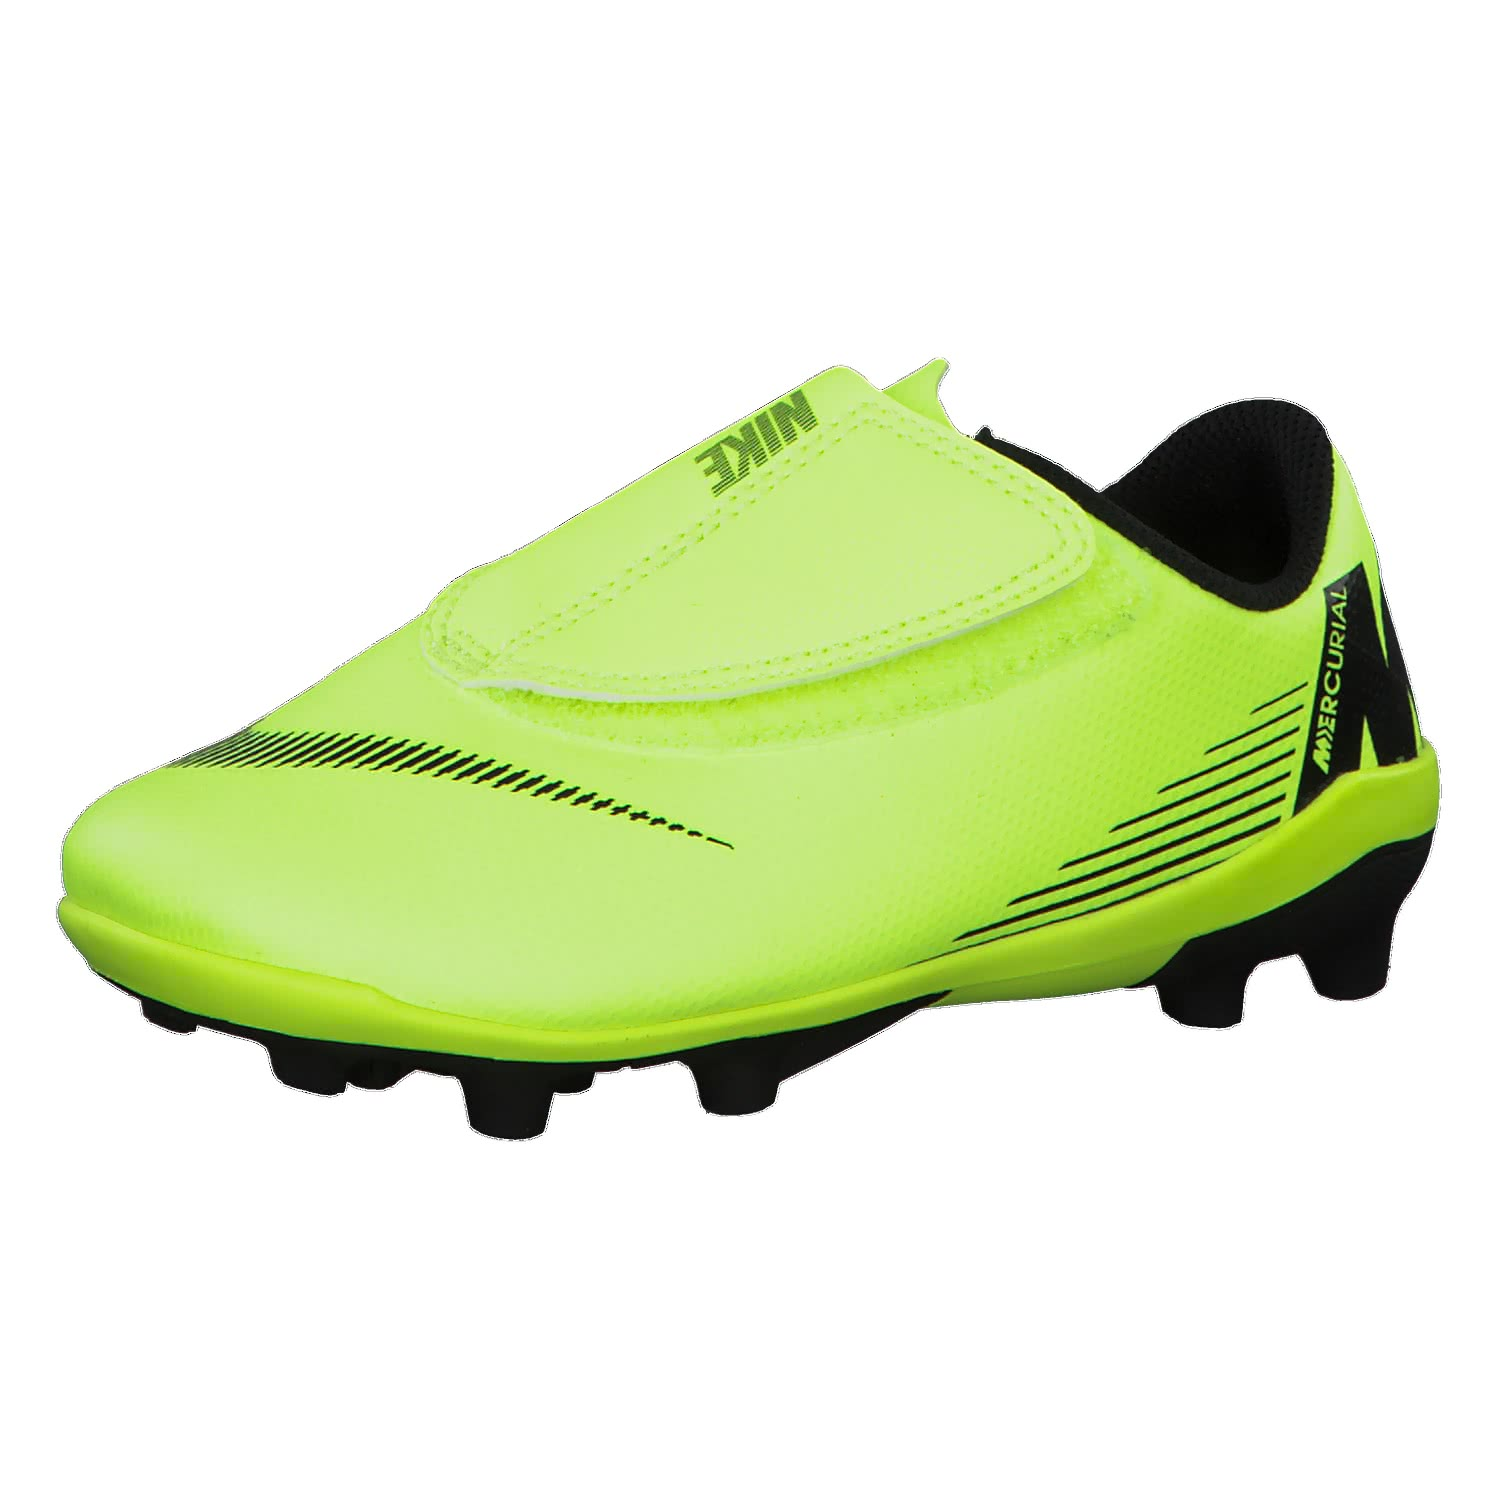 NIKE VAPOR XII CLUB PS (V) FG/MG AH7351-701 JR